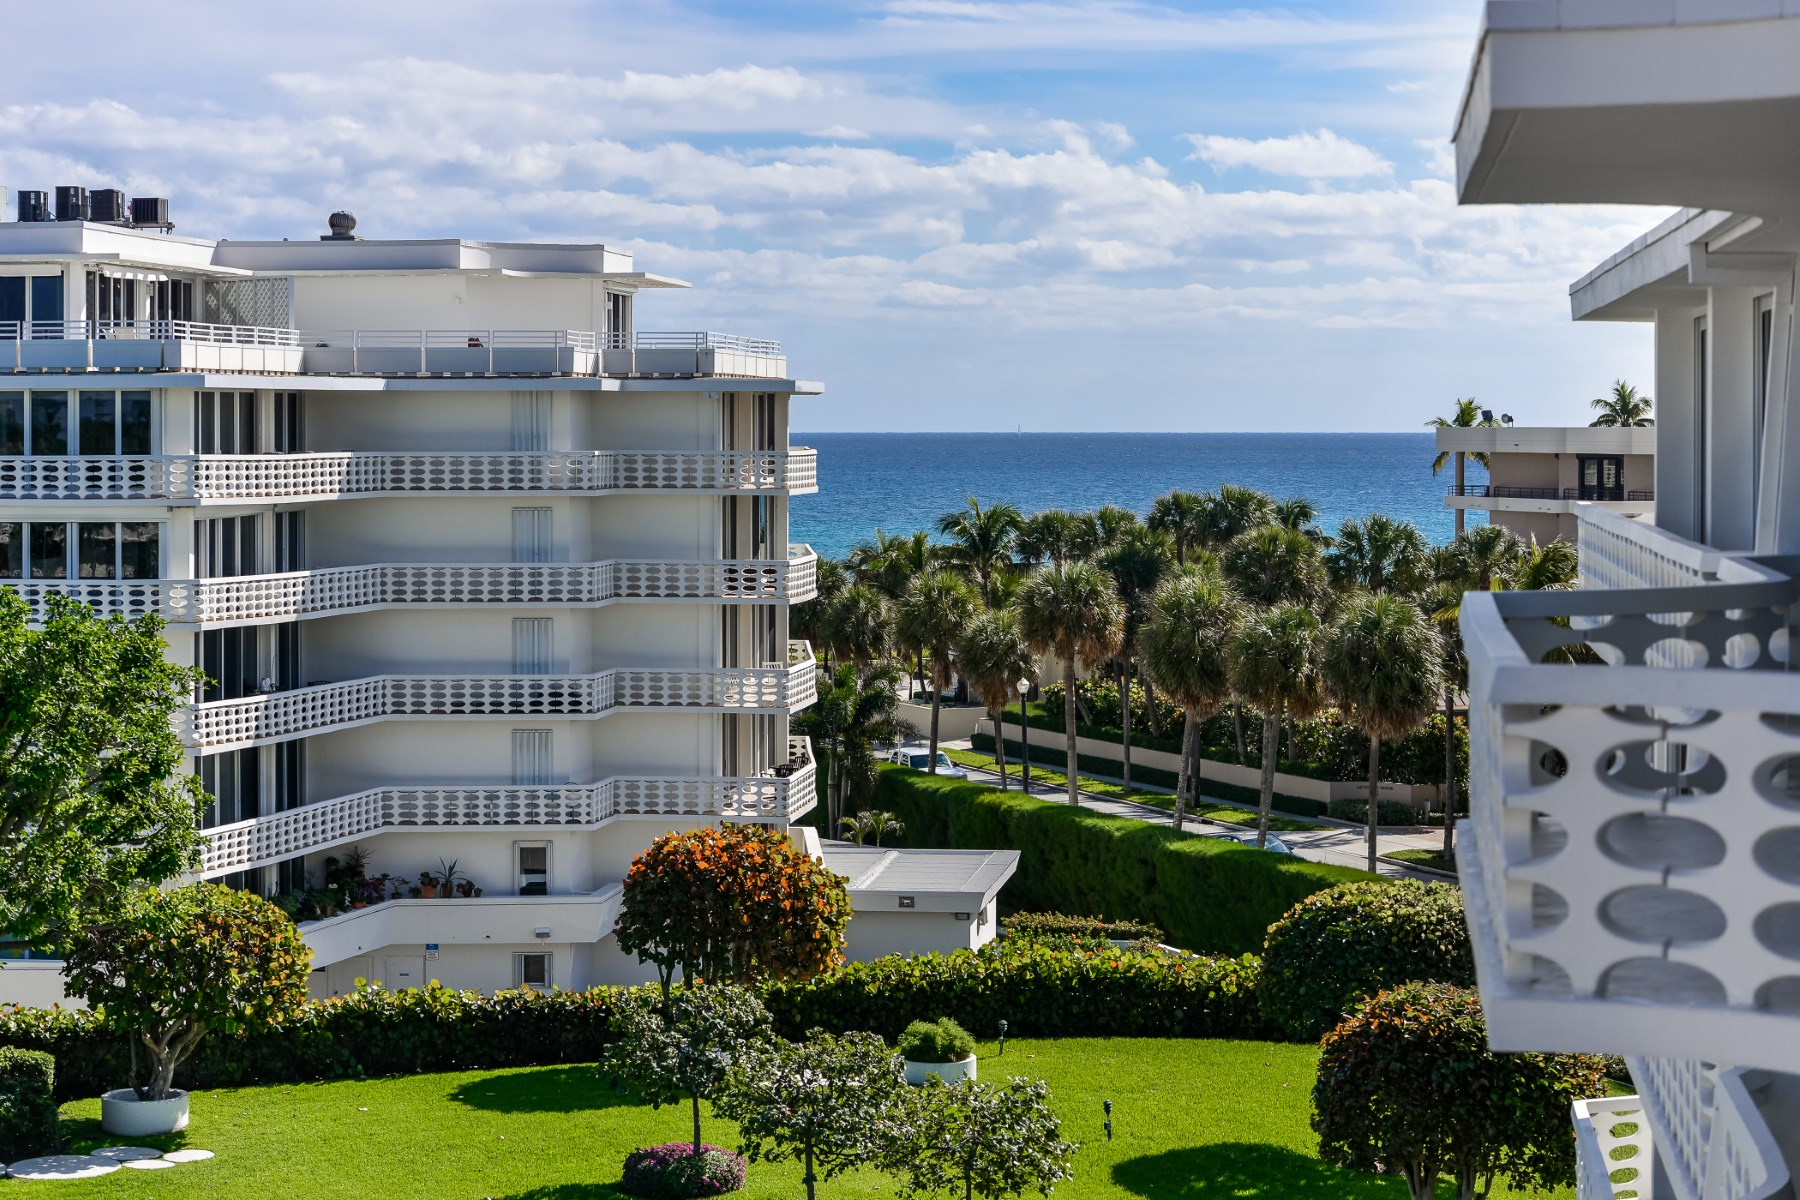 Copropriété pour l Vente à Beautifully Renovated Turnkey 130 Sunrise Ave Apt 503 Palm Beach, Florida 33480 États-Unis